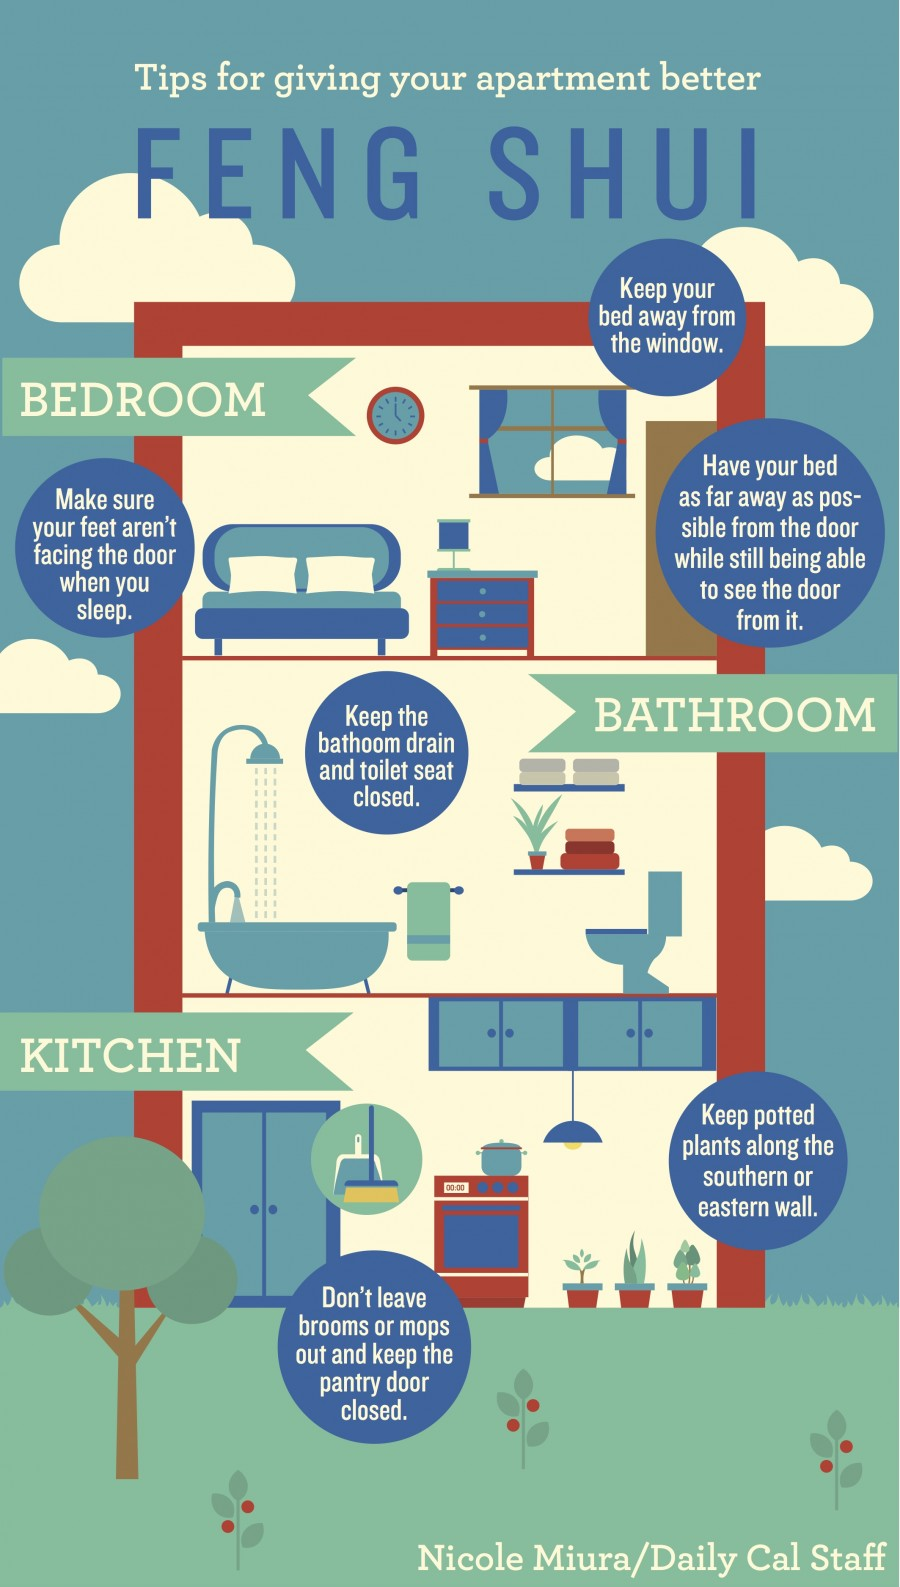 How to give your apartment better feng shui | The Daily Californian